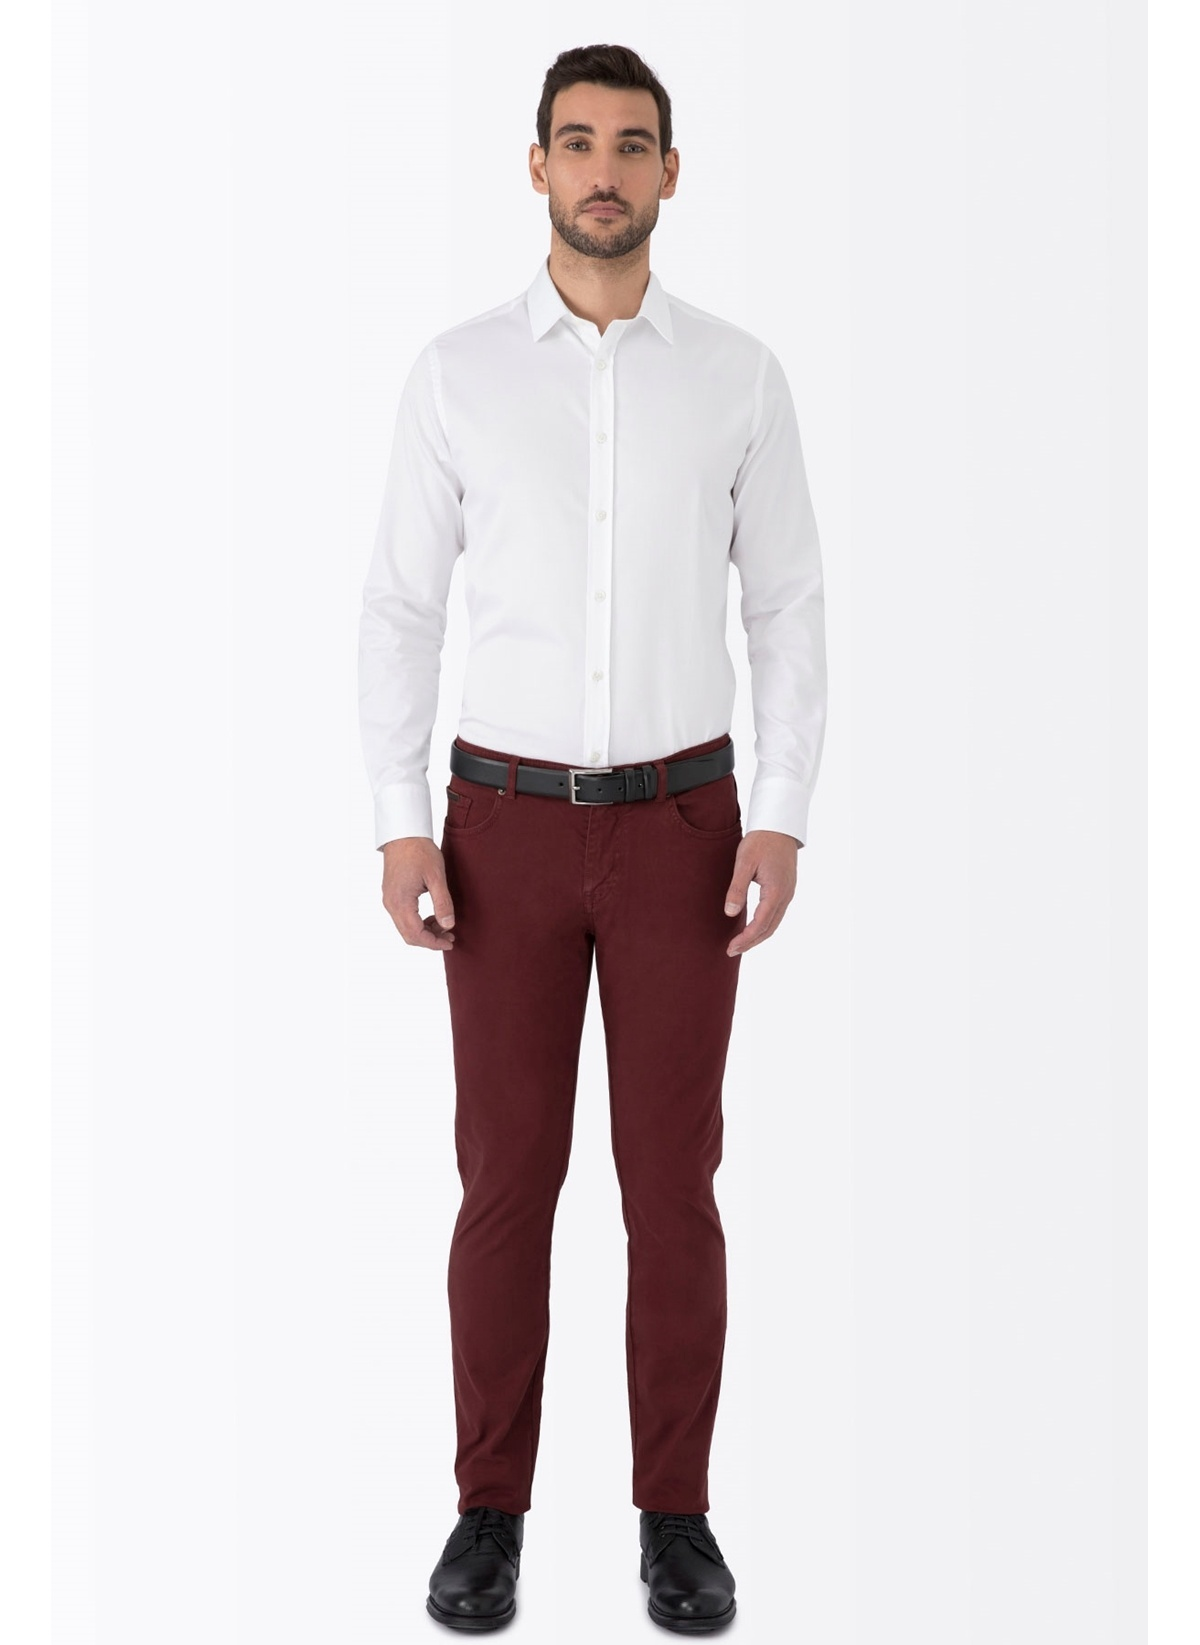 Hemington Slim Fit Kanvas Spor Pantolon 174422005 Pantolon – 174.5 TL